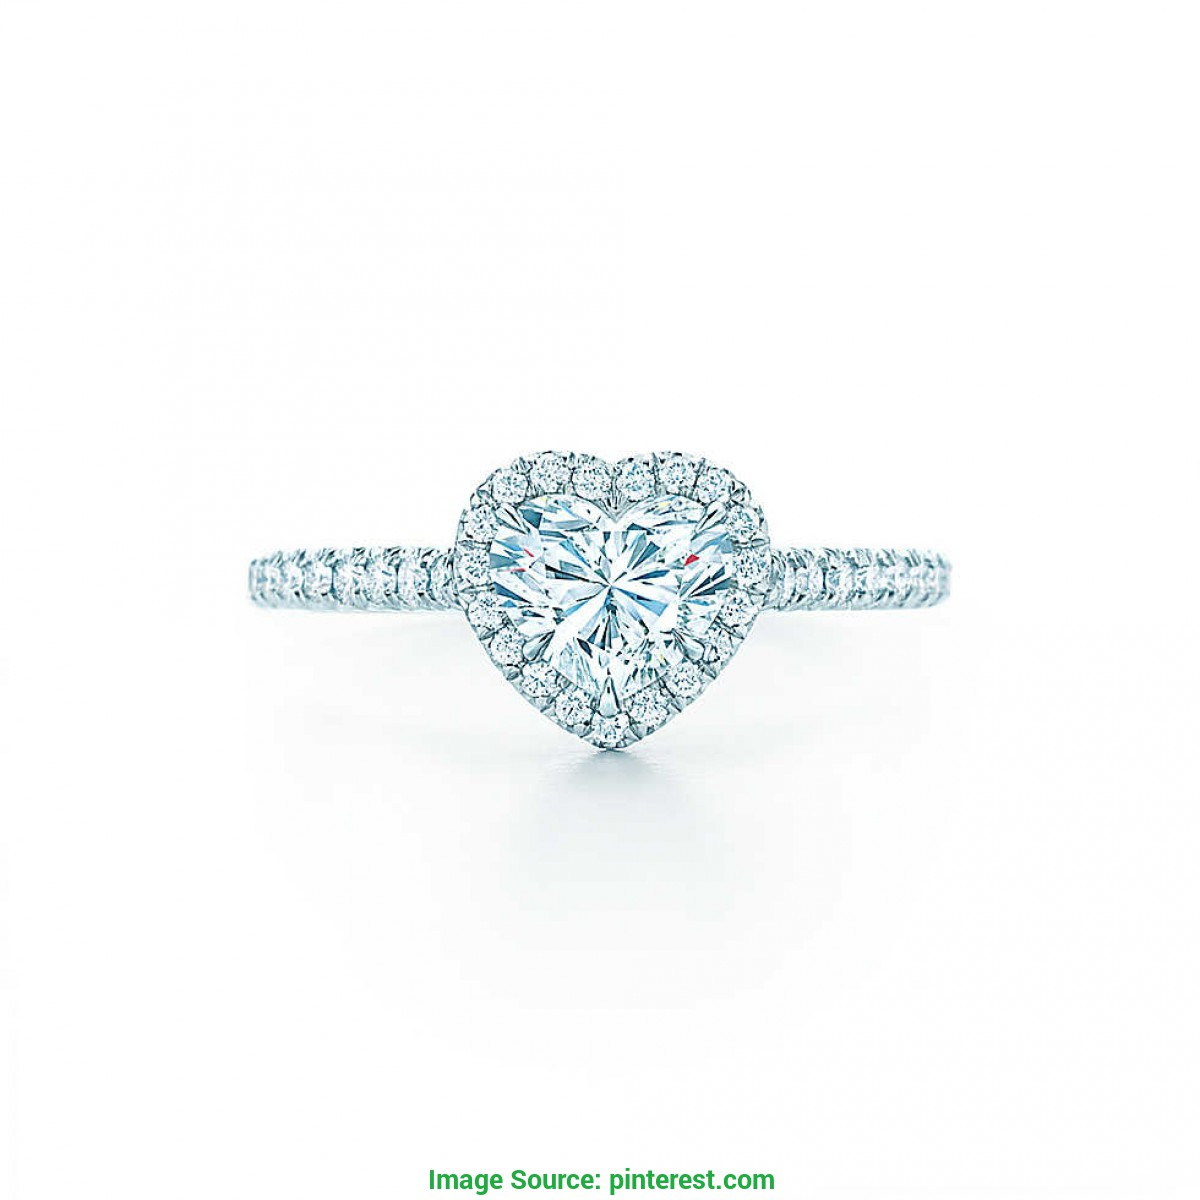 Surpreendente Alianca Noivado Tiffany Anel de Noivado Tiffany & Co. Com Diamantes - Heart Shap